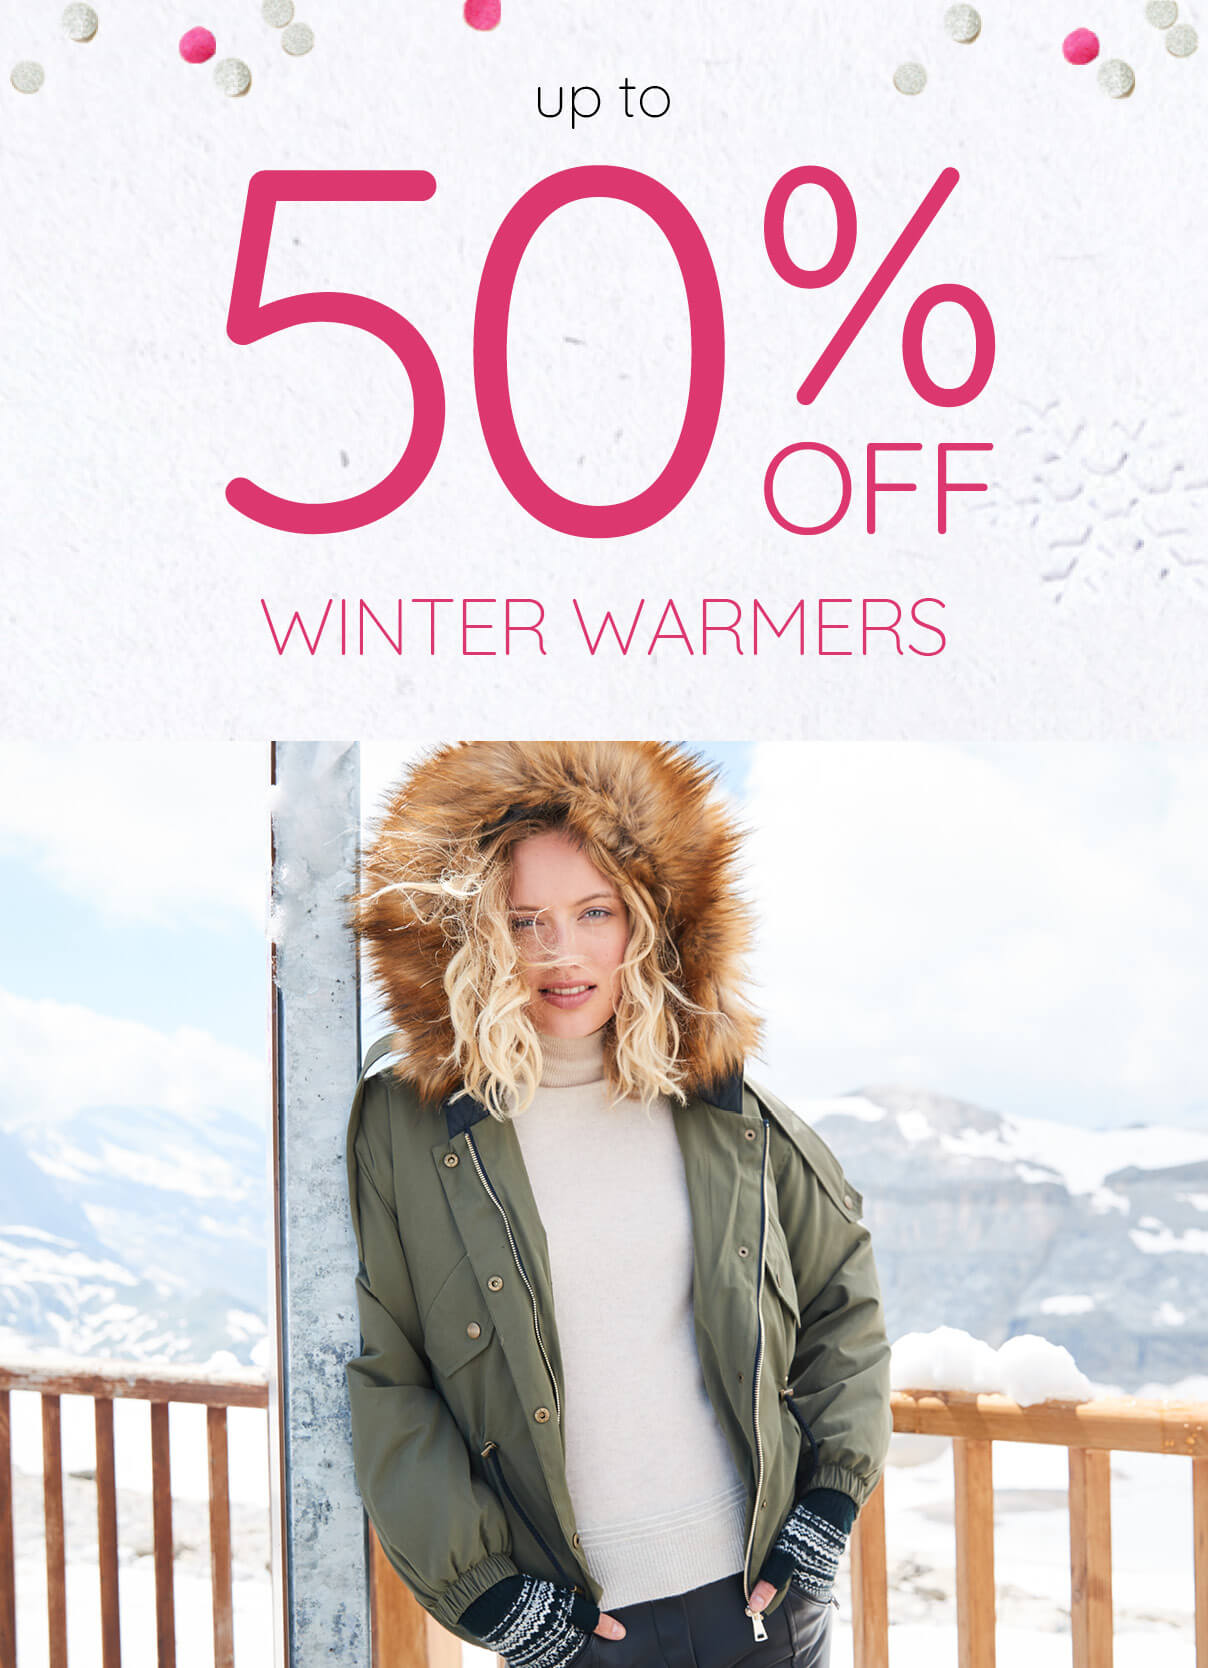 Winter Sale - Up to 50% Off Winter Warmers